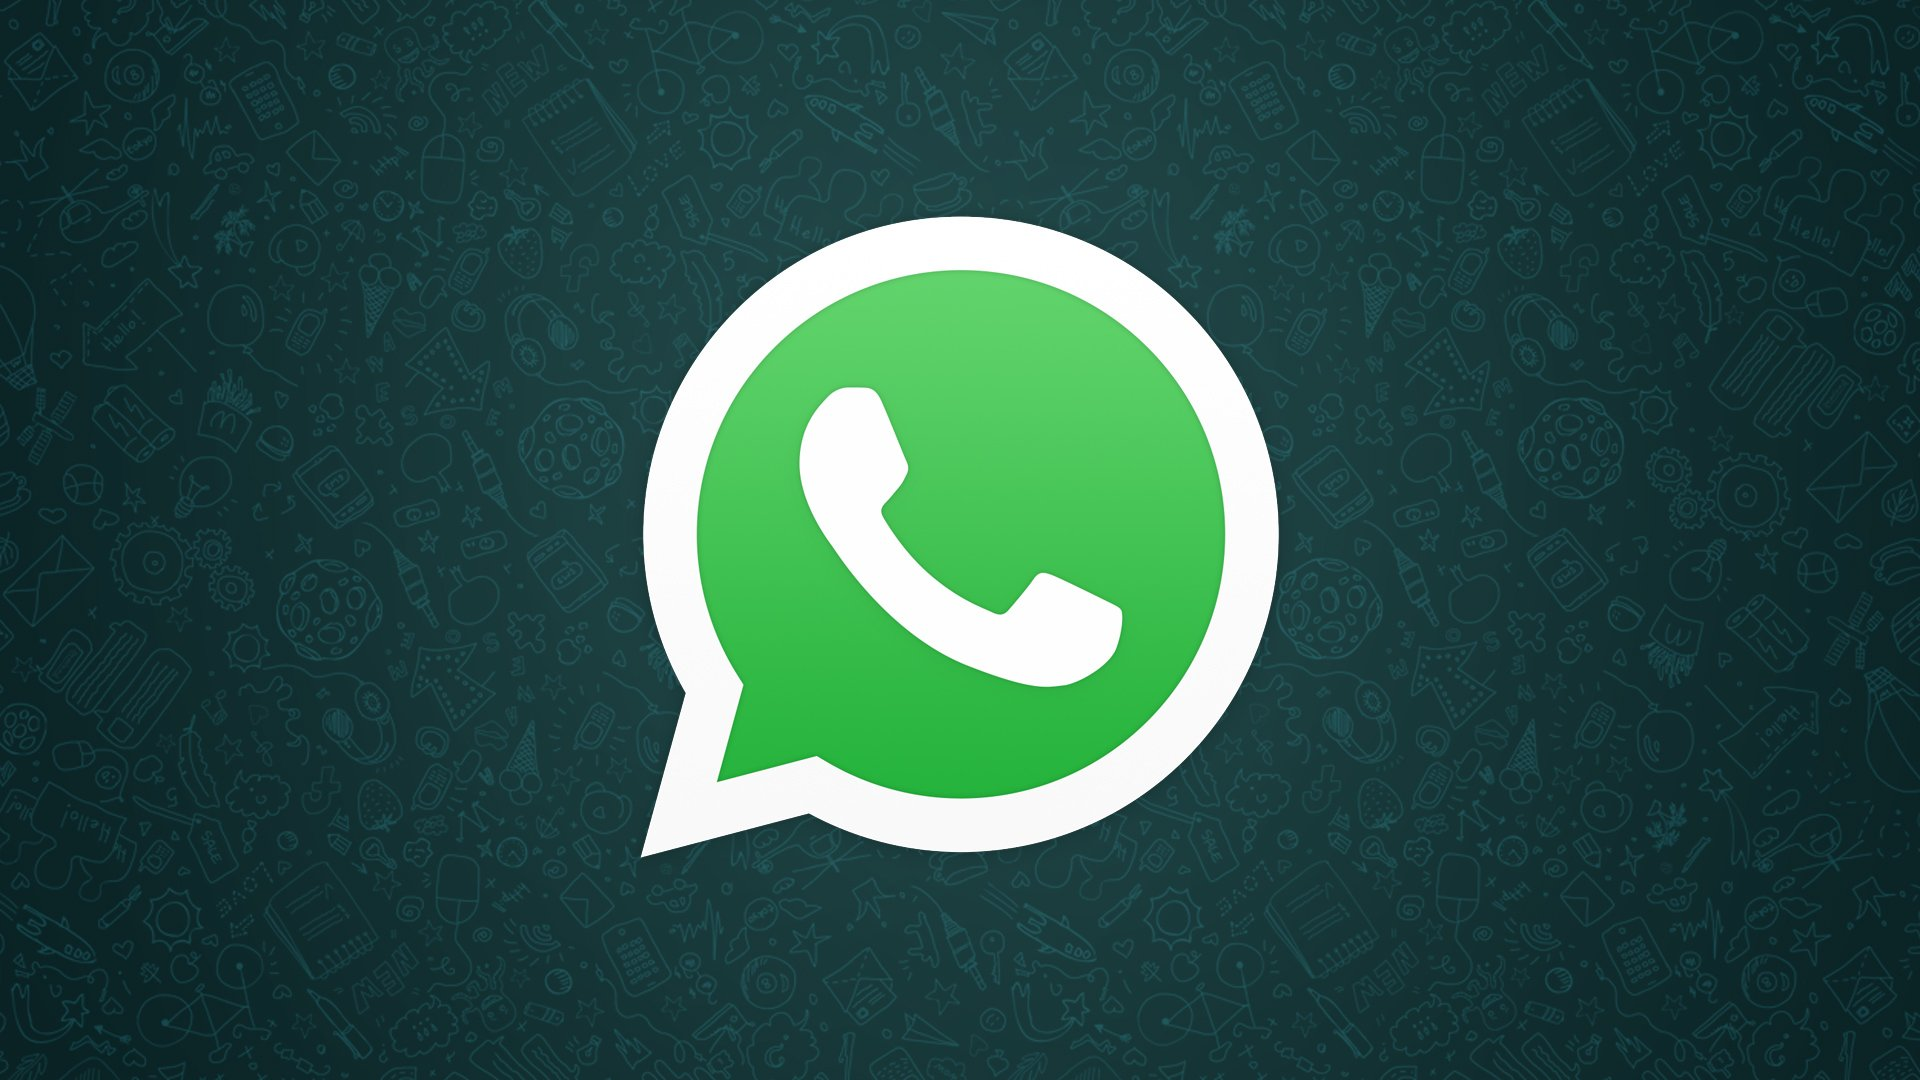 WhatsApp: Share Everything What You Want